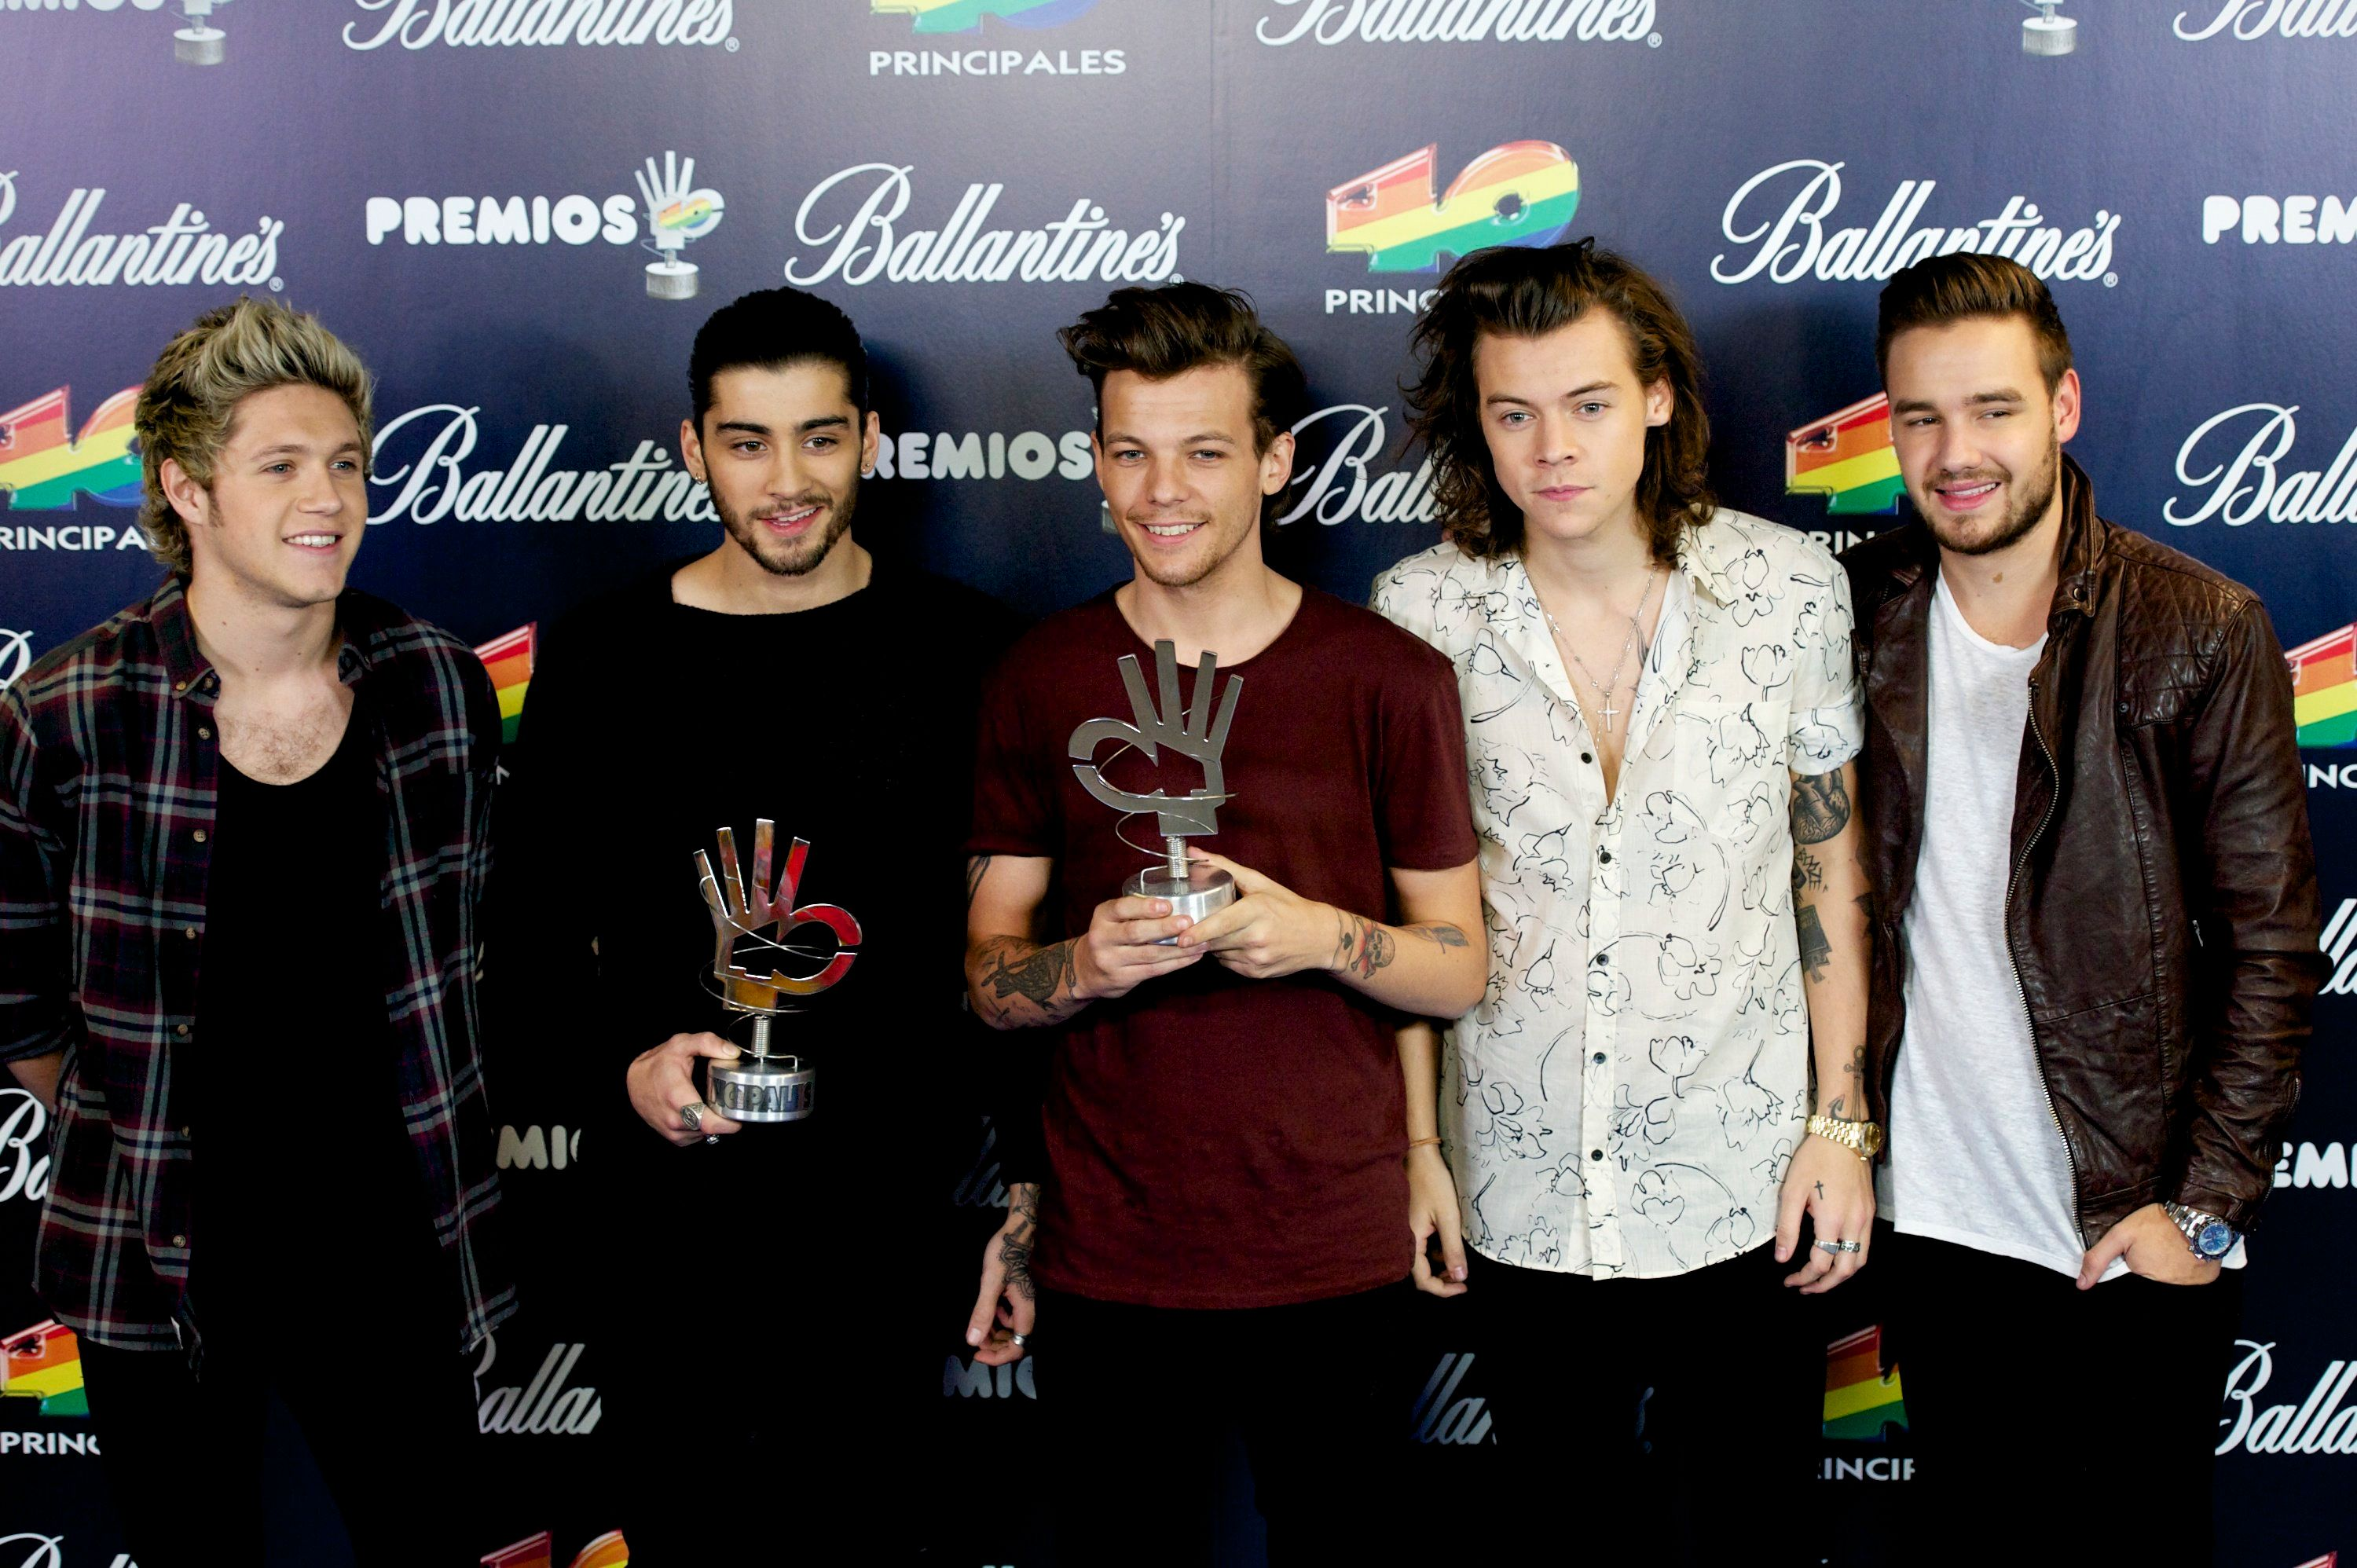 MADRID, SPAIN - DECEMBER 12:  Niall Horan, Zayn Malik, Louis Tomlinson, Harry Styles and Liam Payne of One Direction receive their awards at '40 Principales Awards 2014' at Palacio de los Deportes on December 12, 2014 in Madrid, Spain.  (Photo by Juan Naharro Gimenez/WireImage)